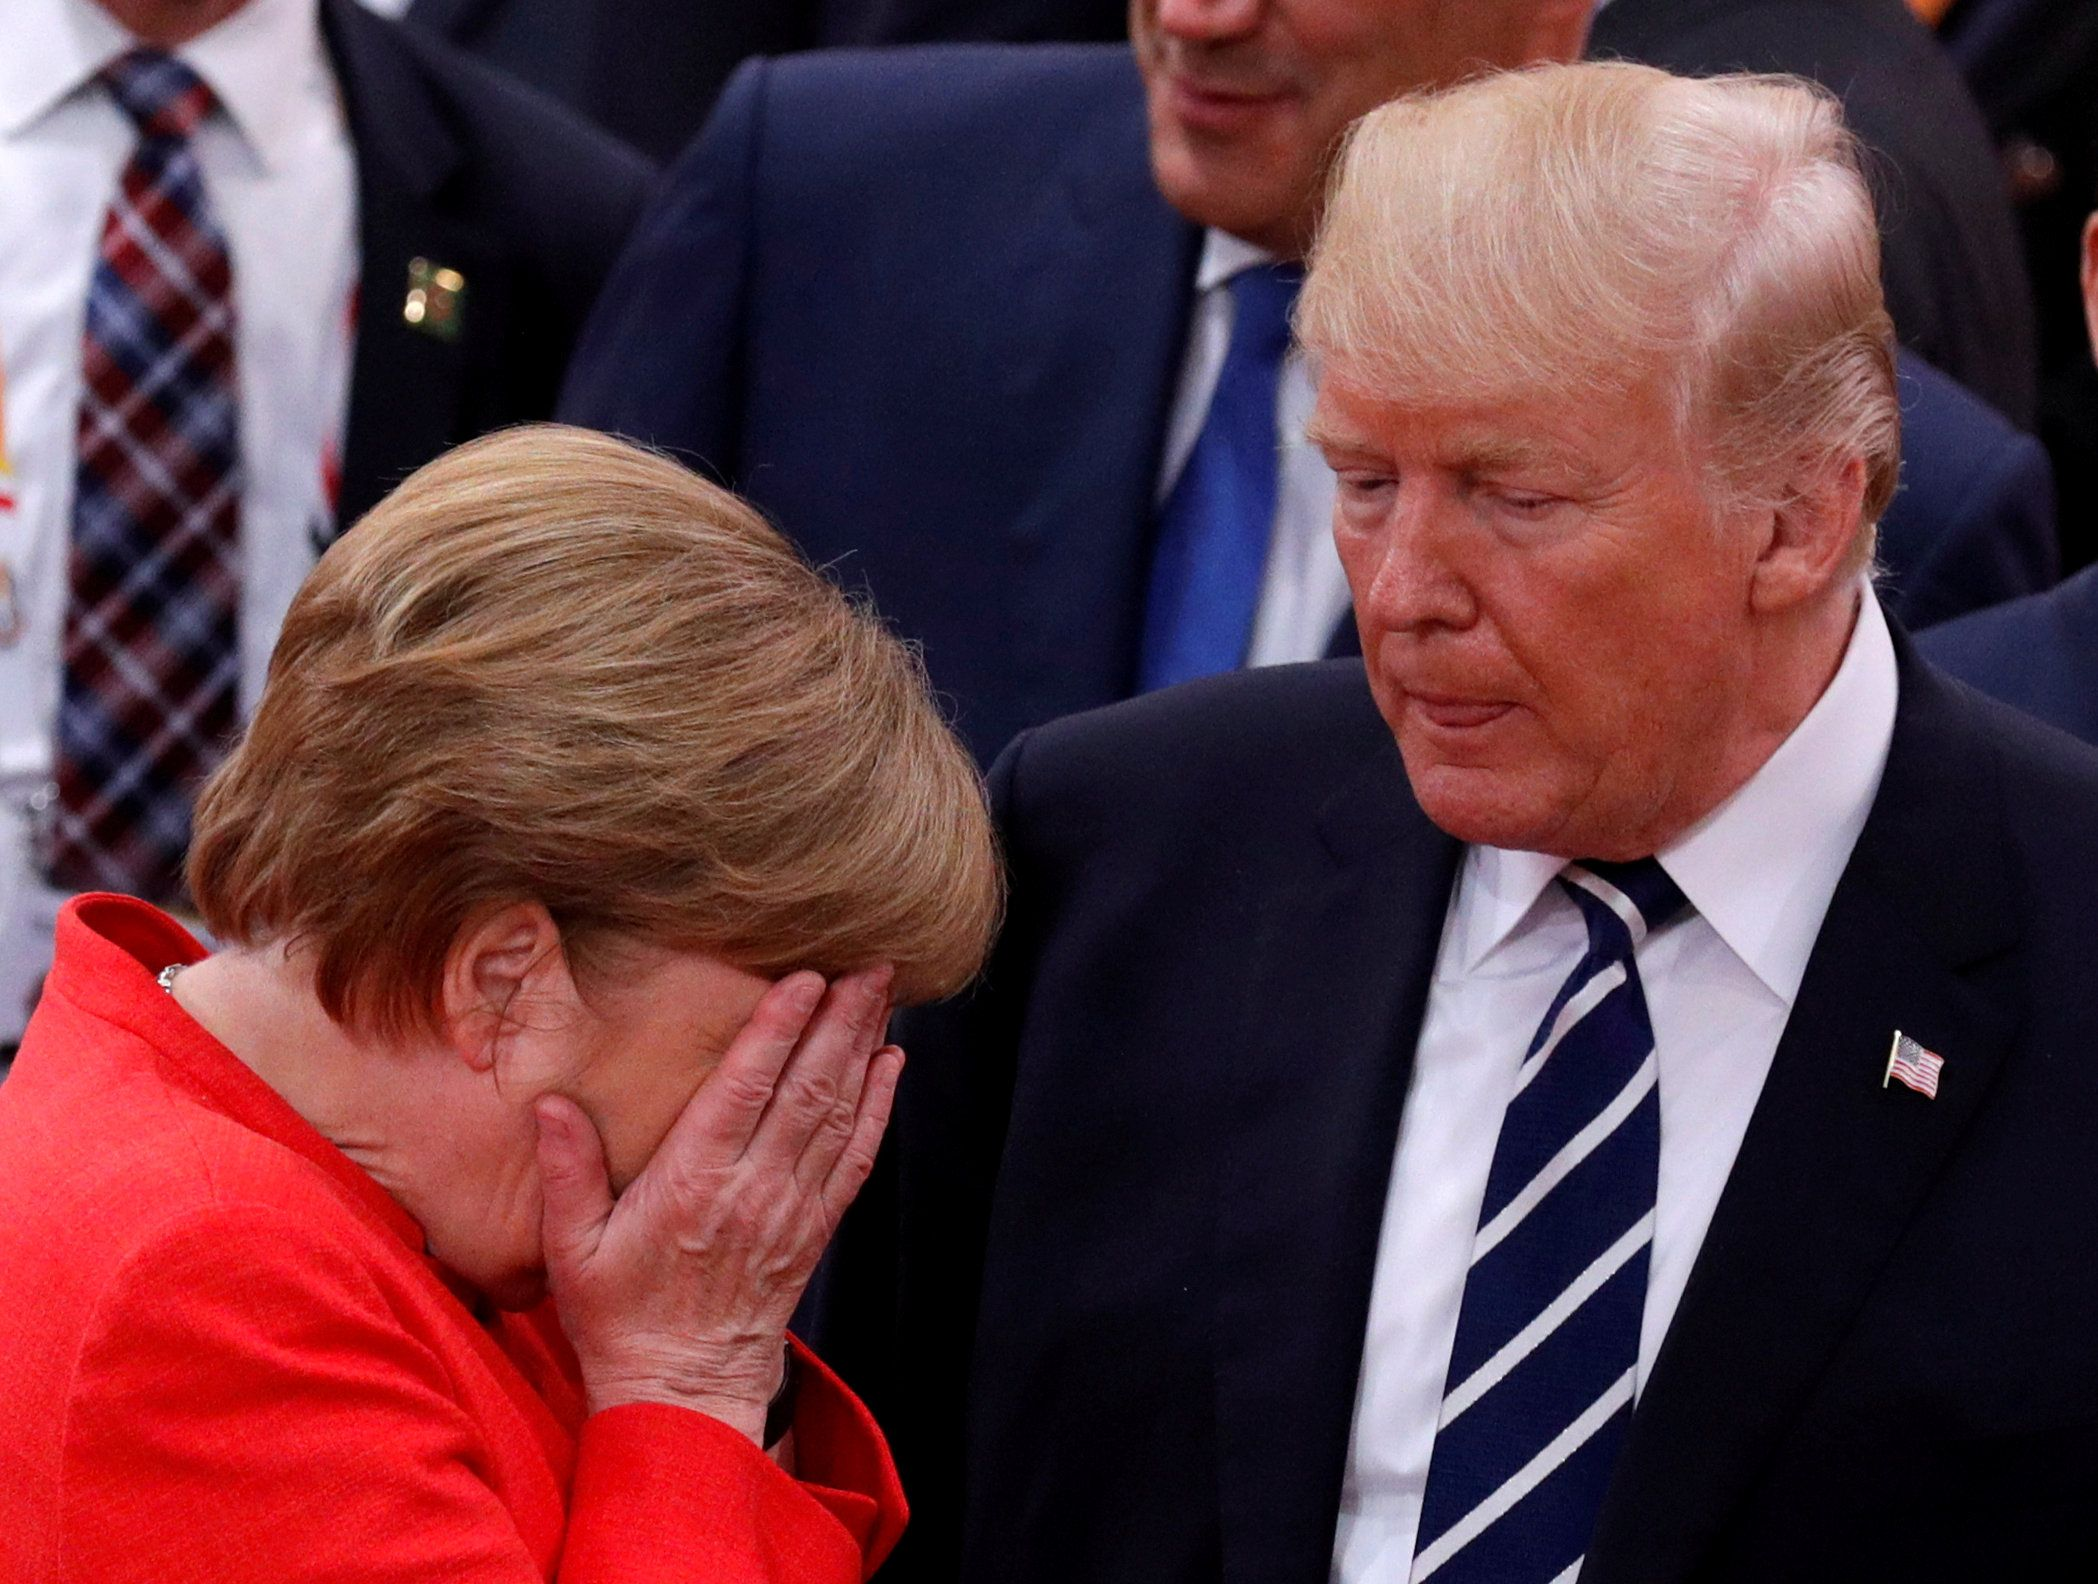 Merkel: Trump 'Even Made a Contribution' on Climate Change ...